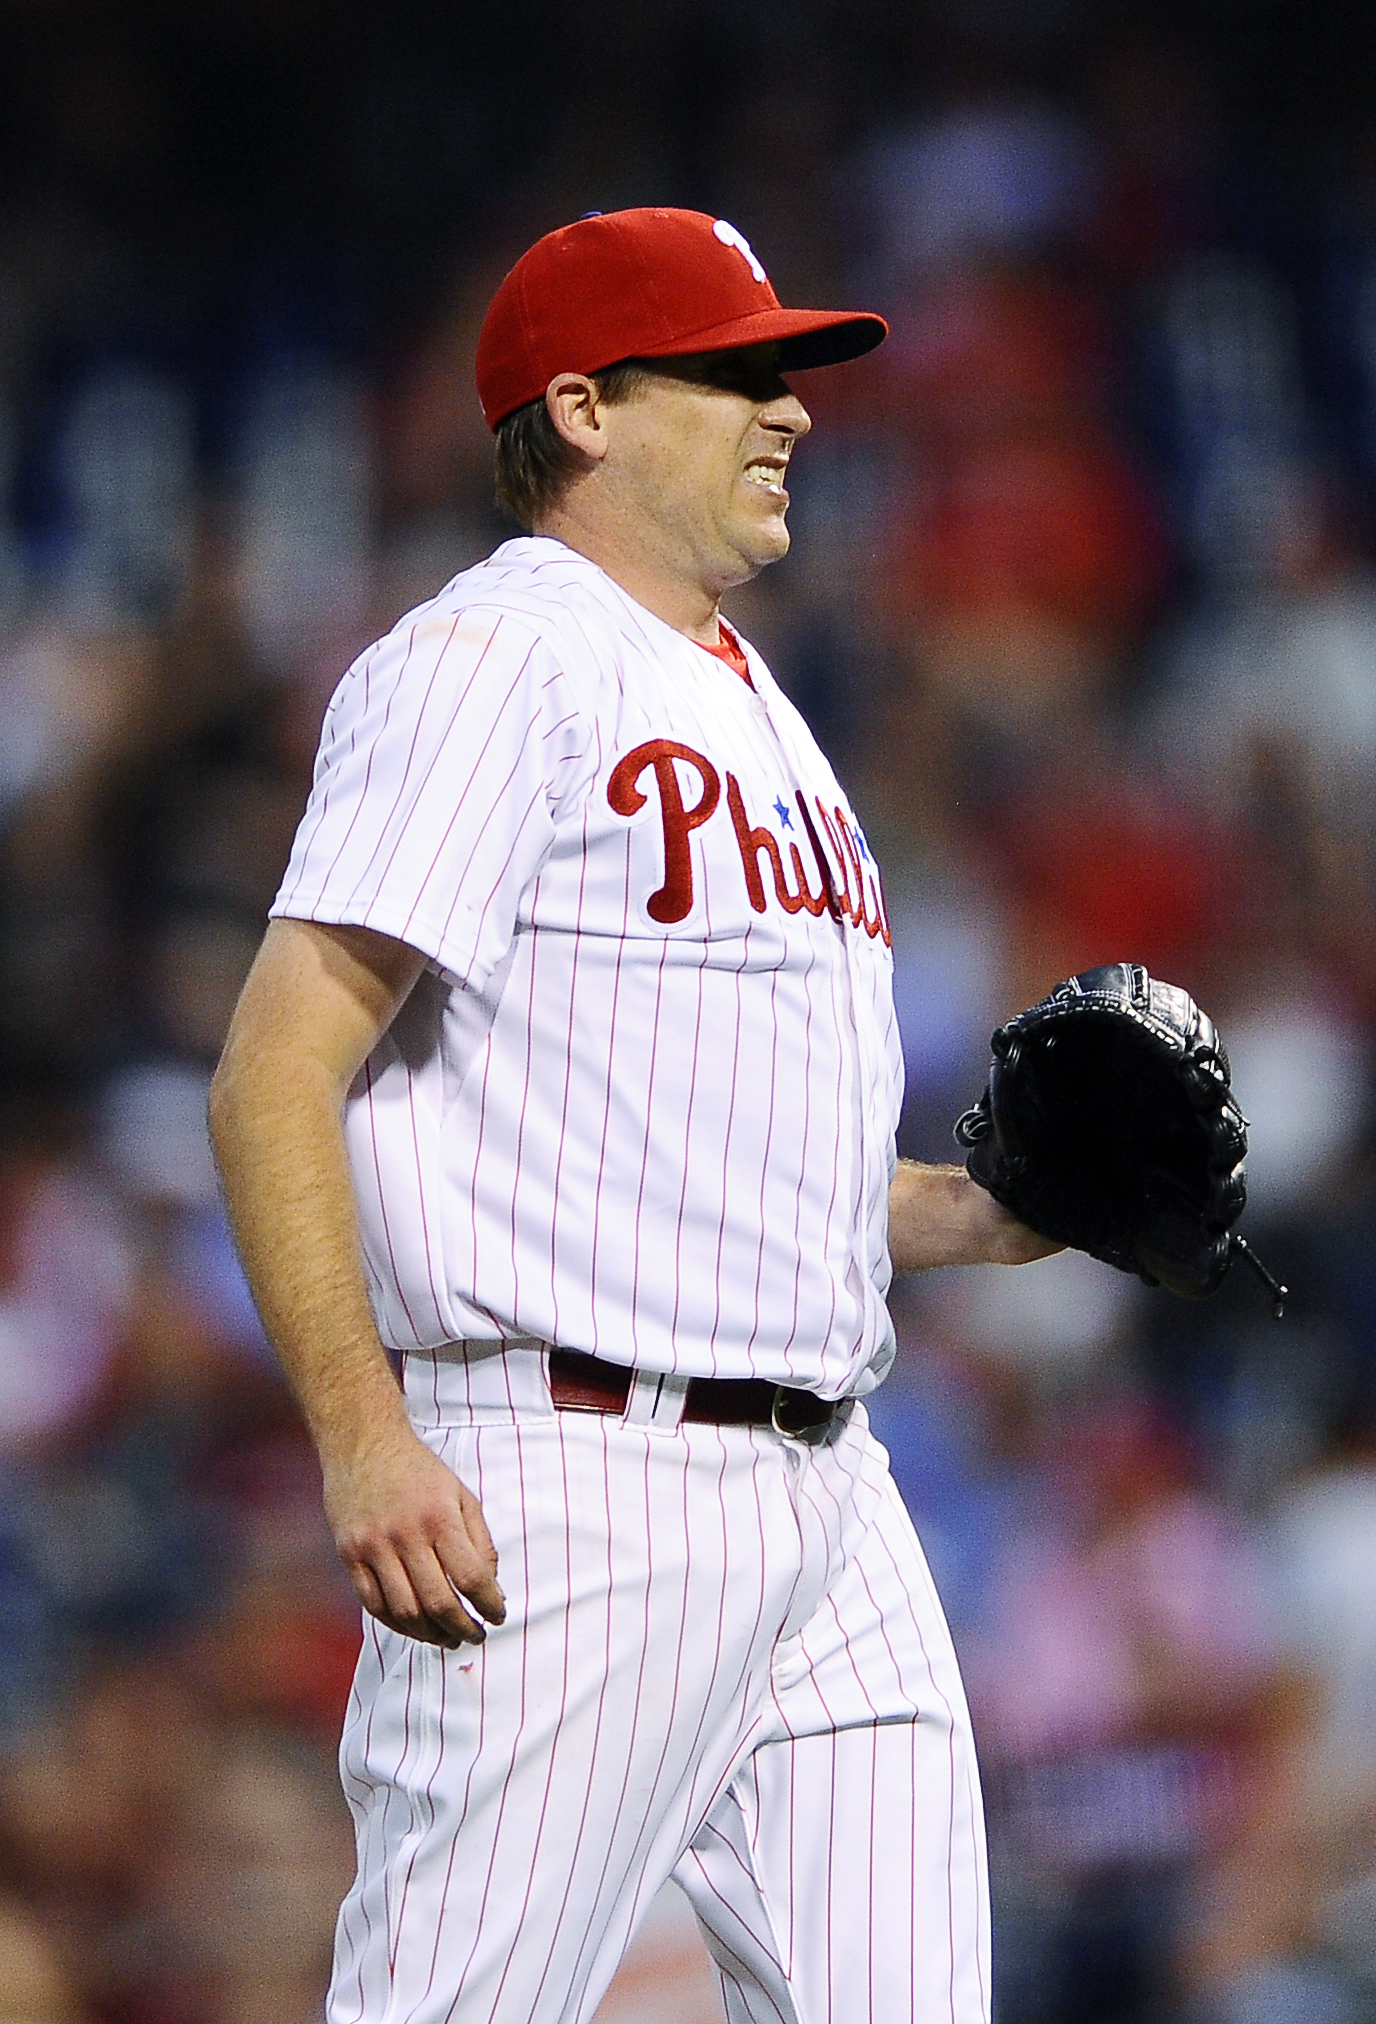 Philadelphia Phillies starting pitcher Kevin Correia reacts after giving up a solo home run to Baltimore Orioles' Travis Snider in the fourth inning of an interleague baseball game, Wednesday, June 17, 2015, in Philadelphia. (AP Photo/Michael Perez)